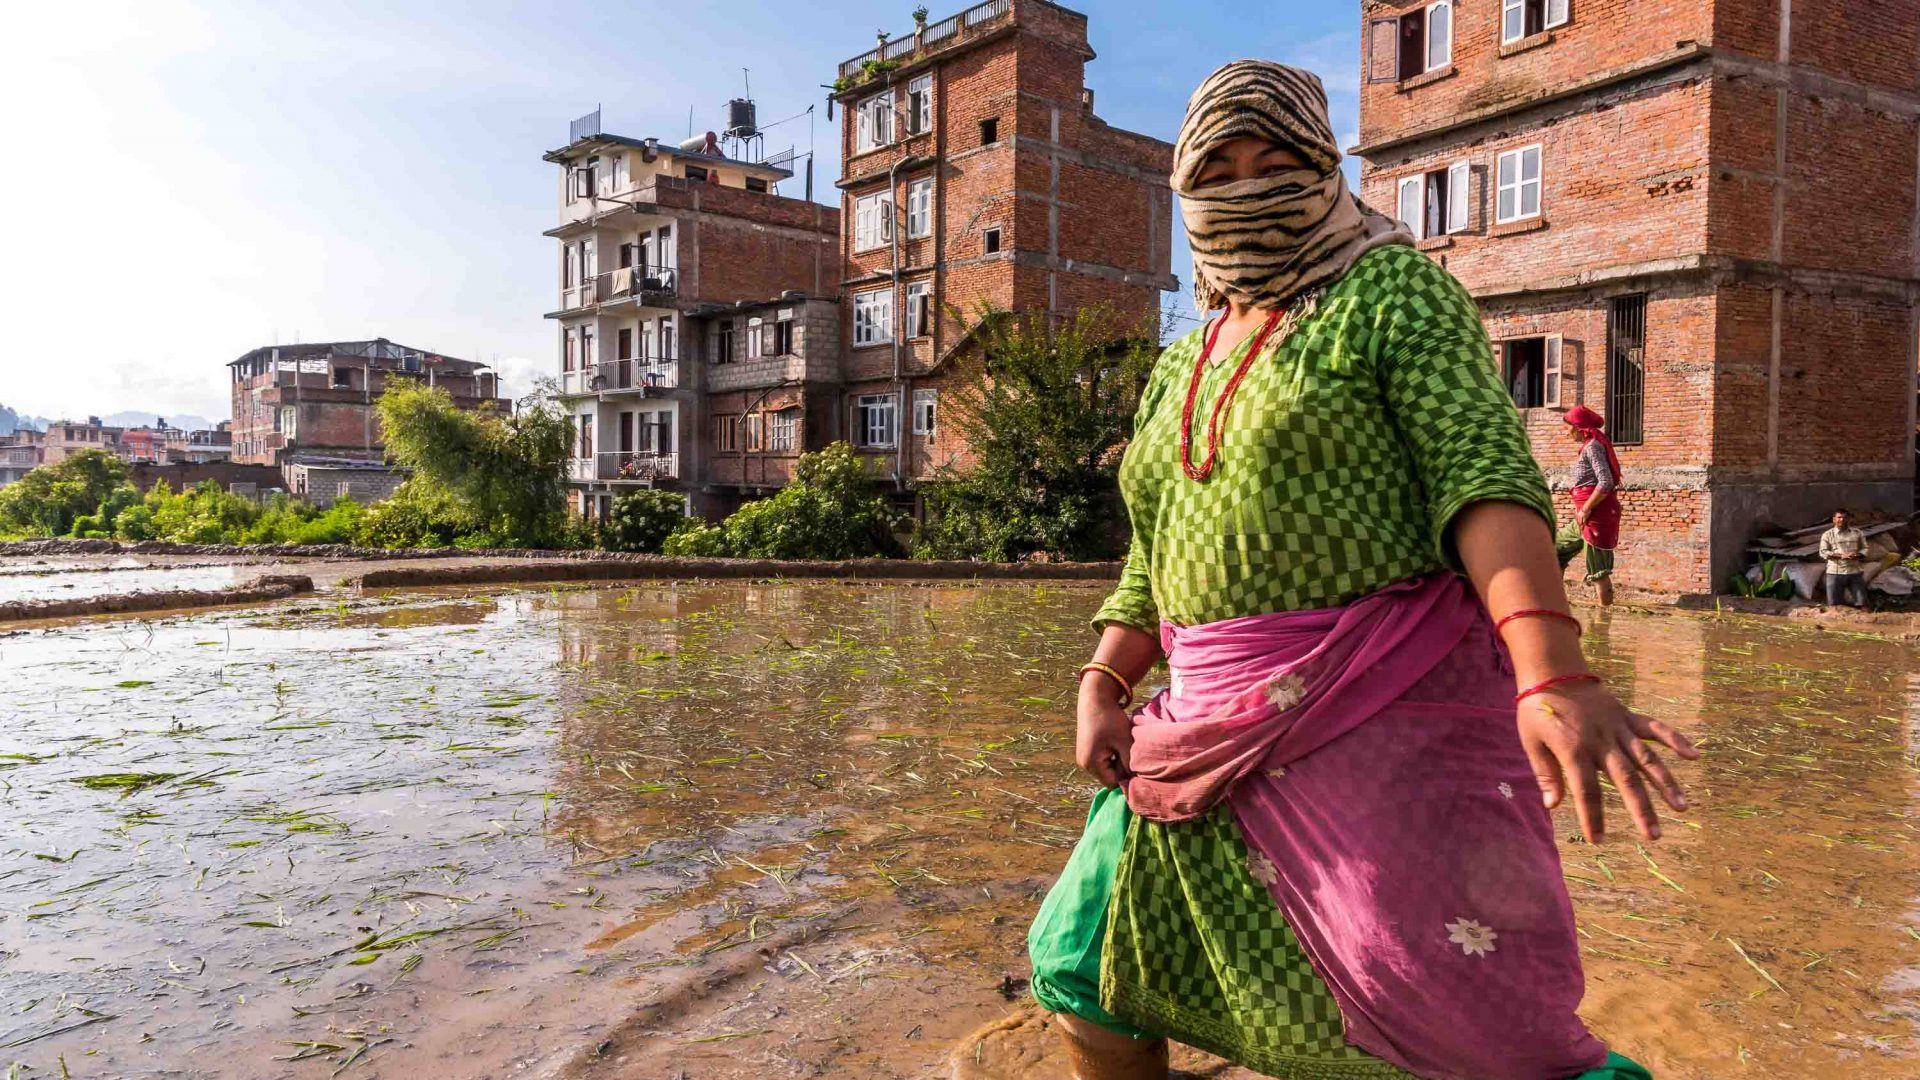 Women work in the flooded rice fields of Panauti, Nepal.